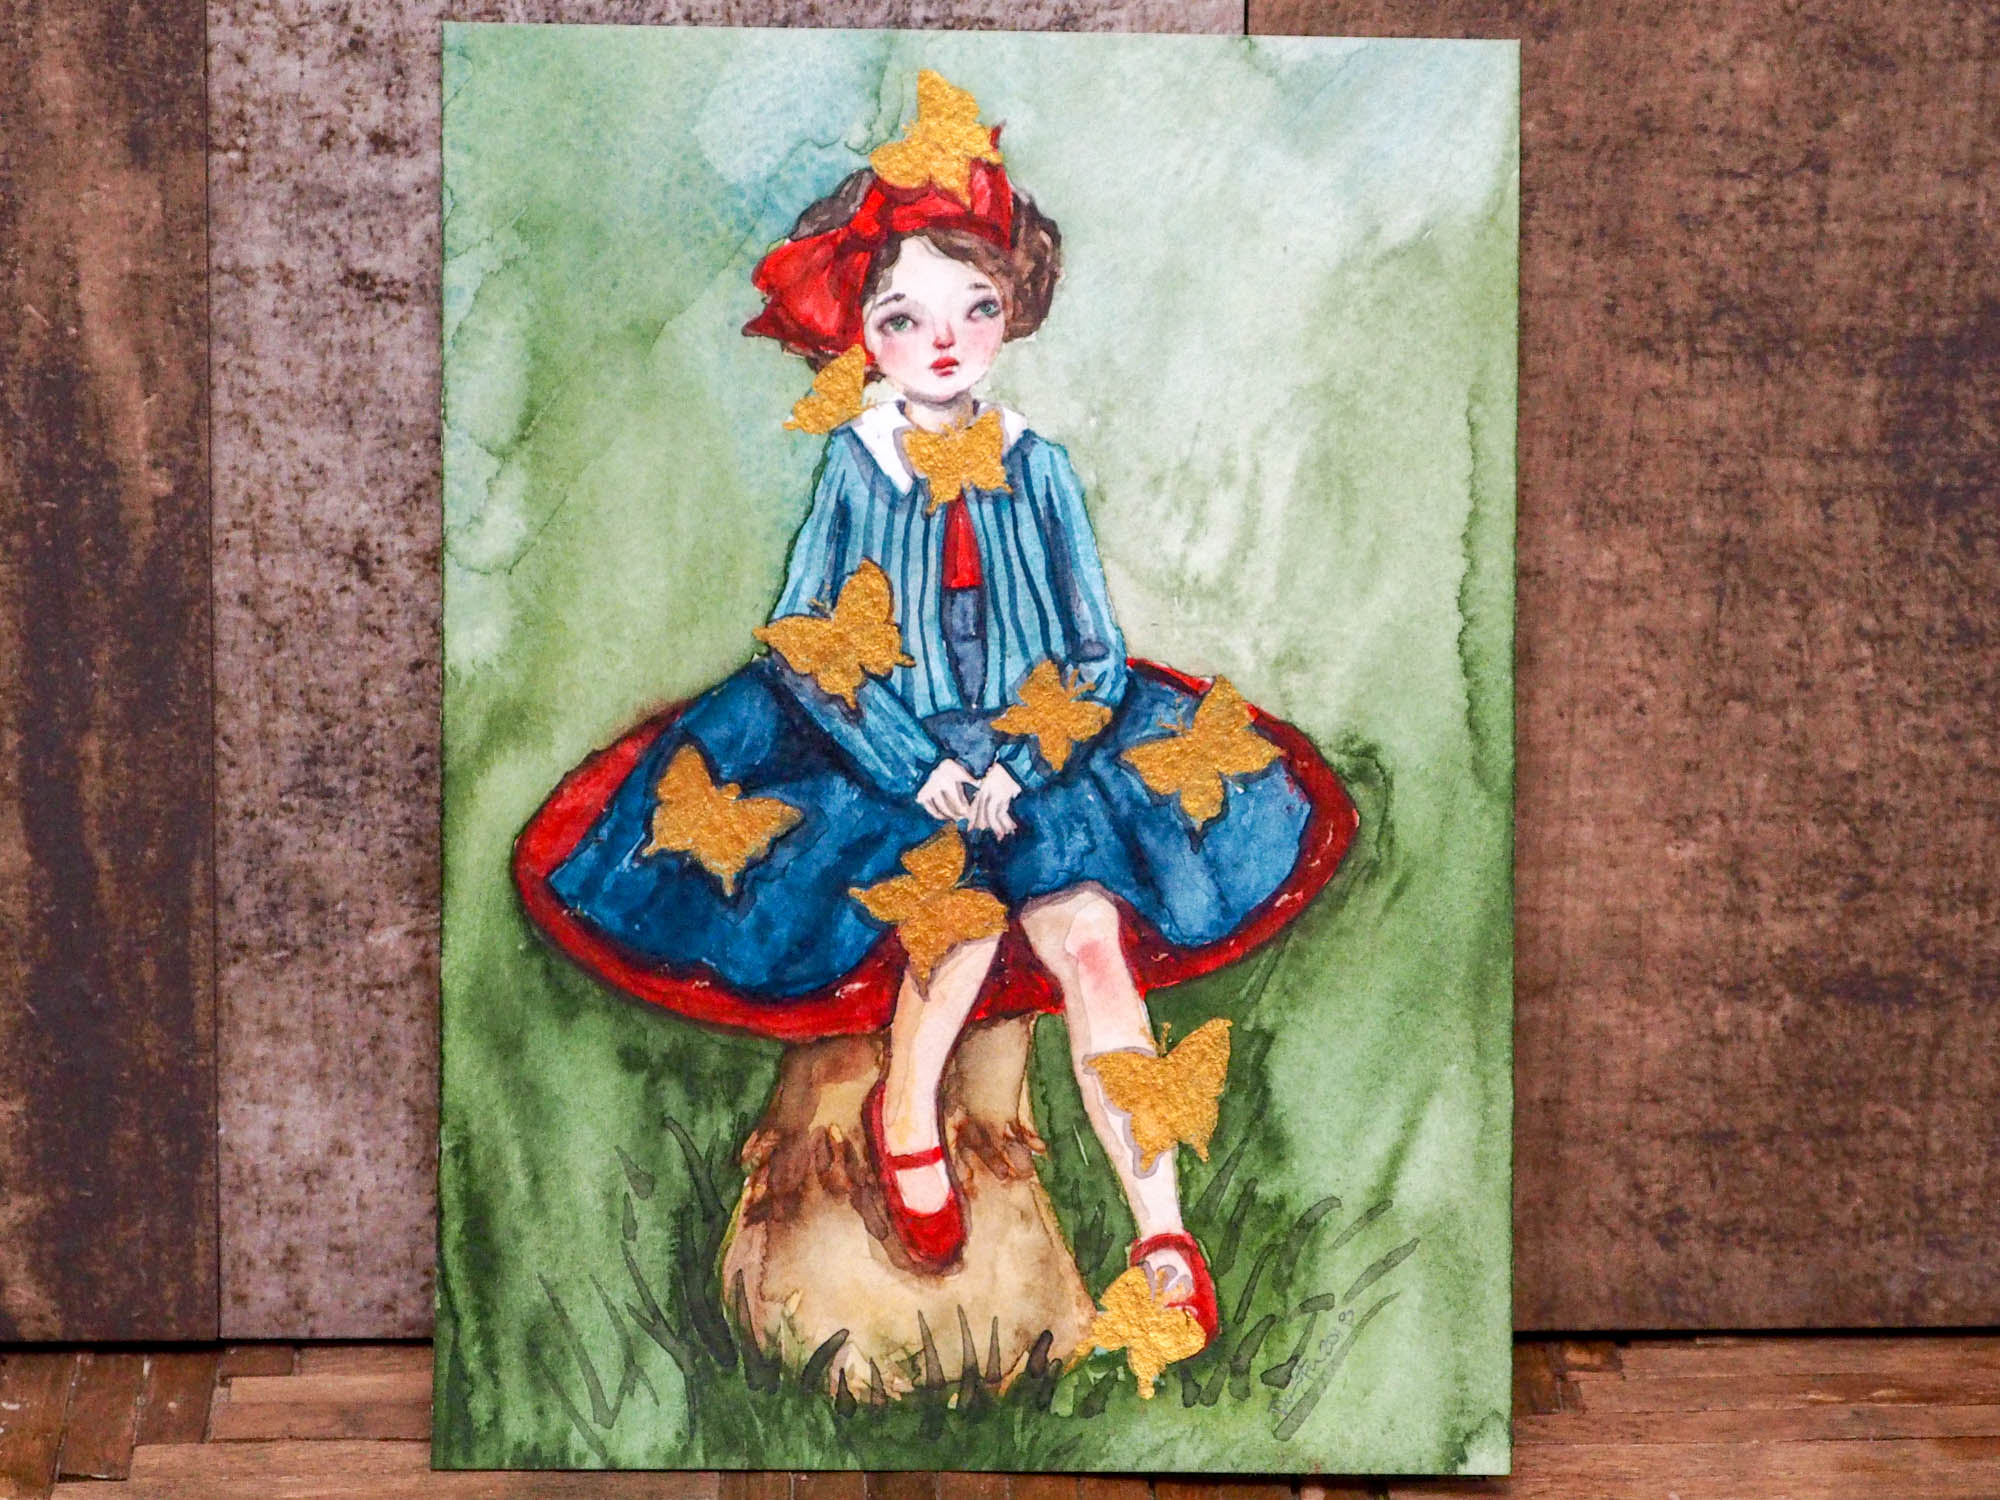 Danita painted herself sitting on a toadstool and surrounded by butterflies in this amazing watercolor original art by Danita. I painted them using a special golden painting I found on trip to Mexico, and they shimmer beautifully with the light!